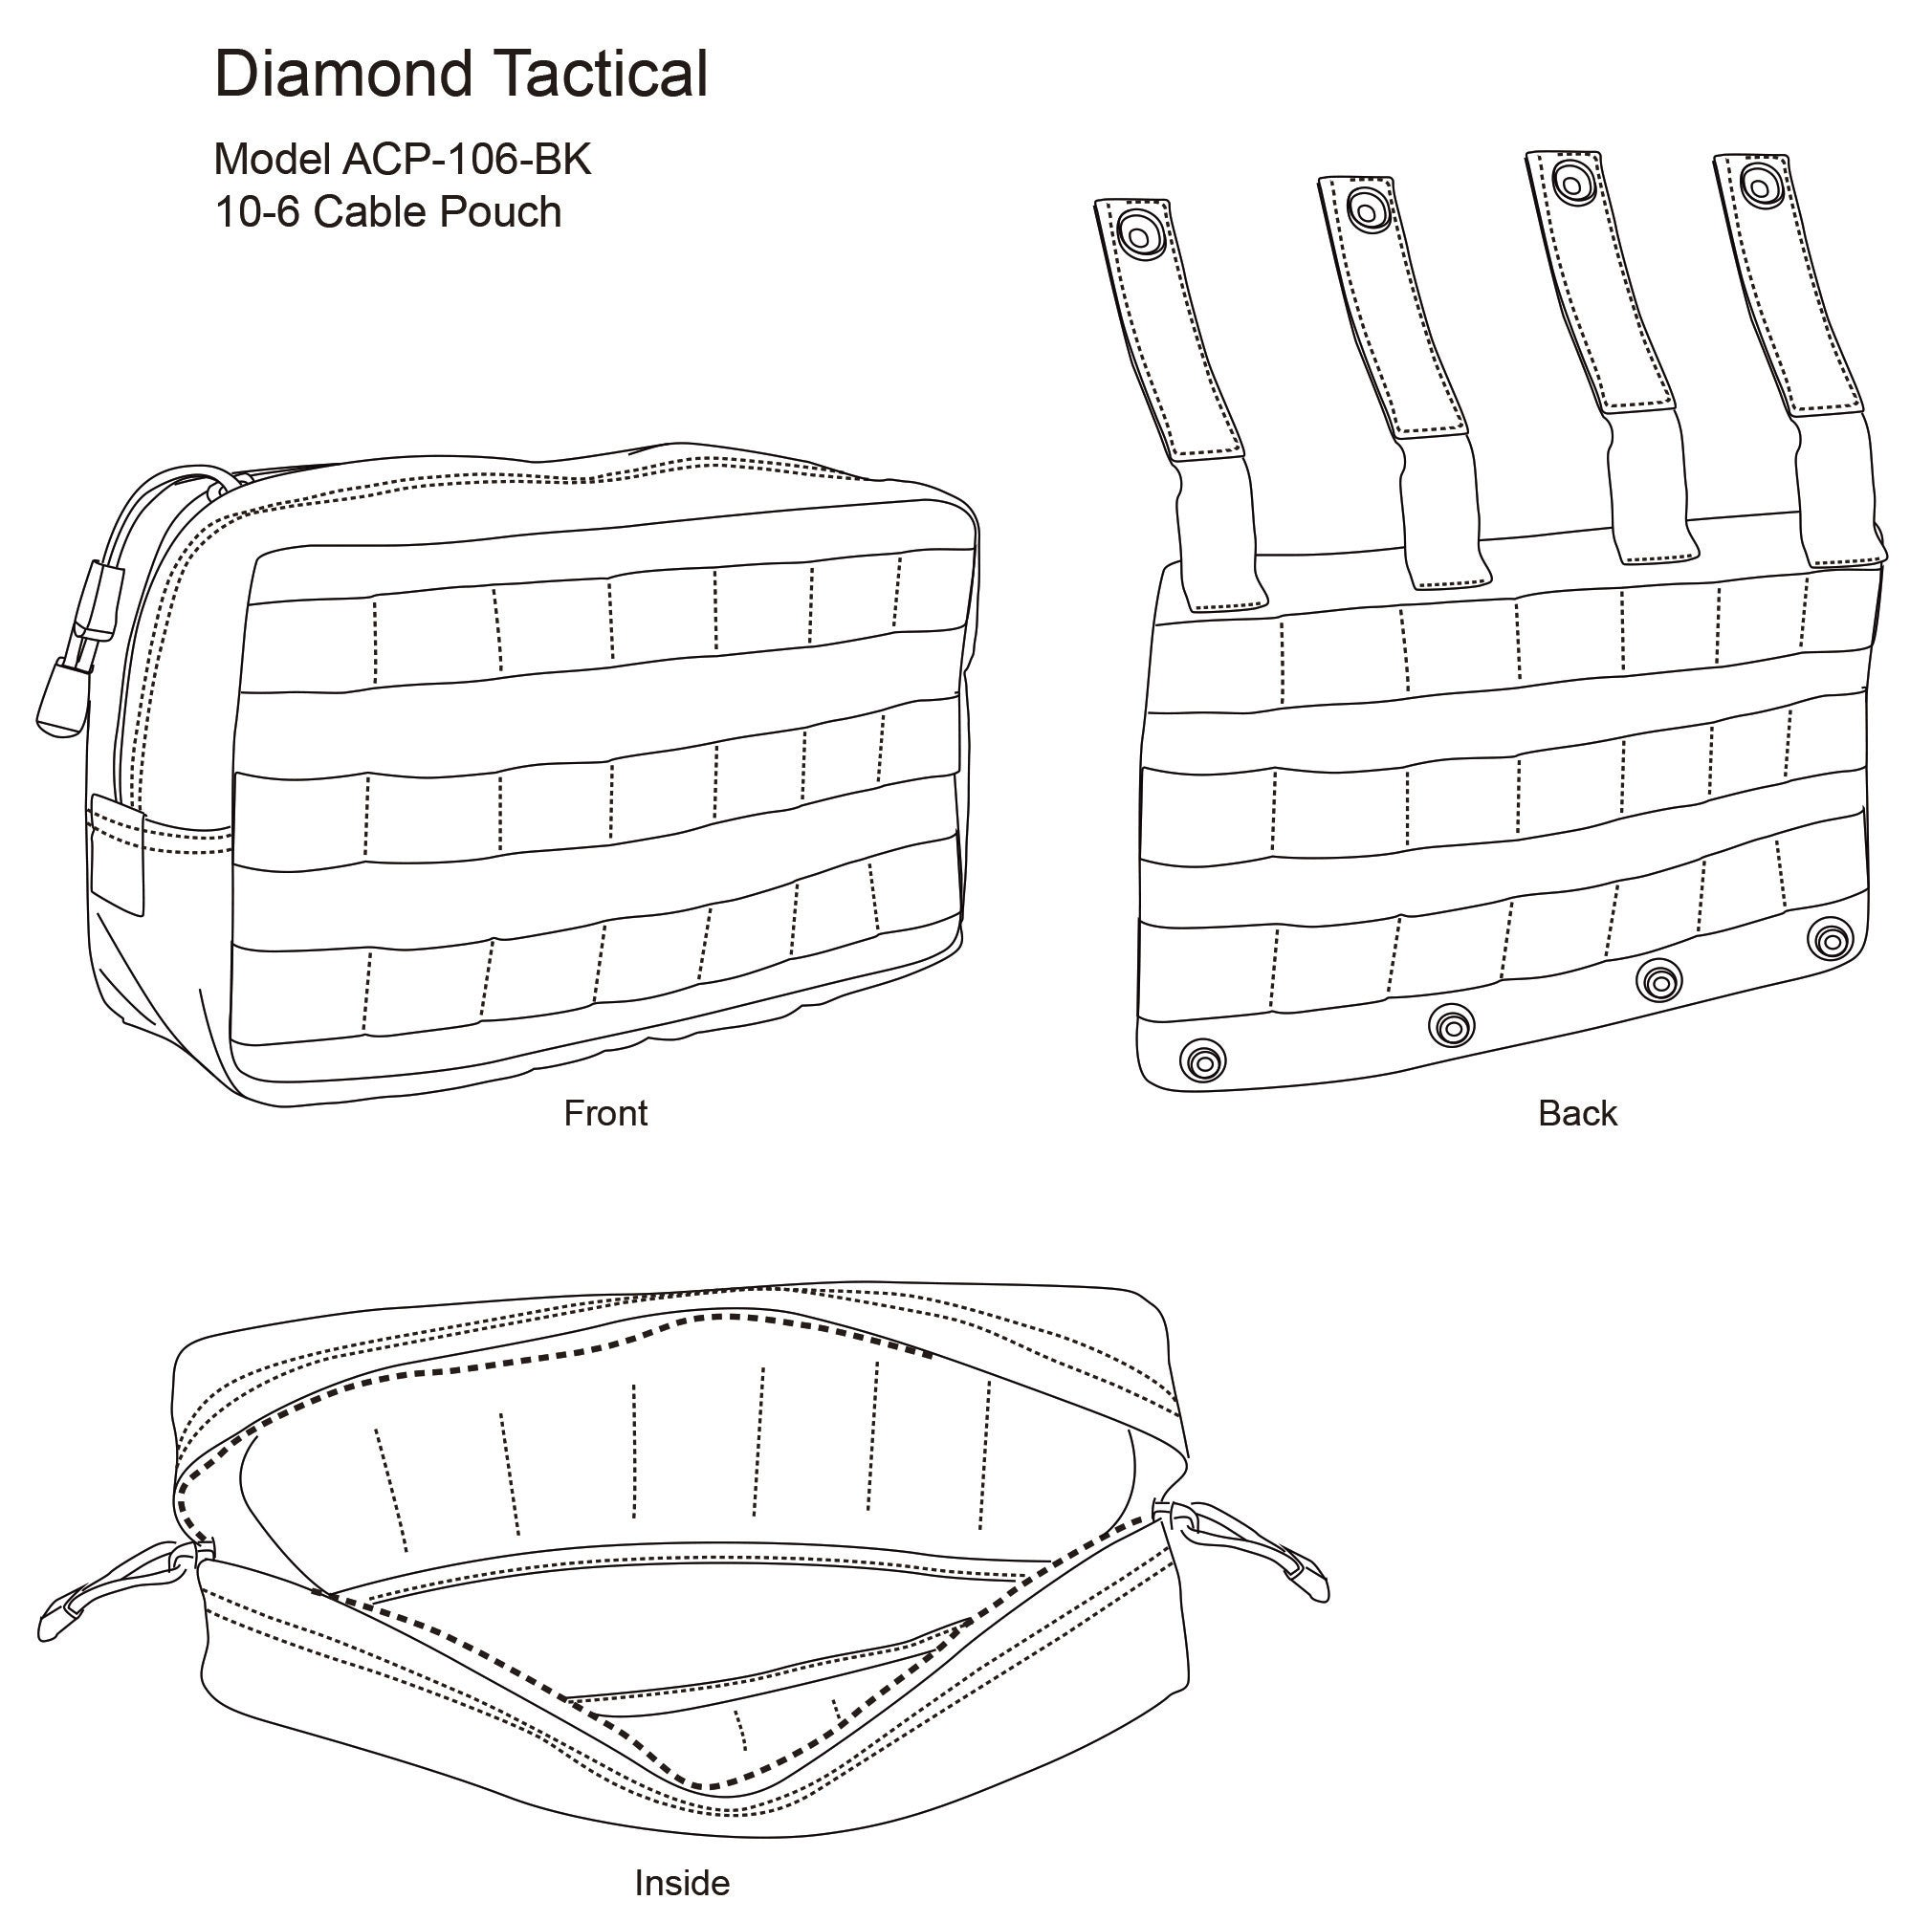 diamond tactical 10-6 cable  wah pouch